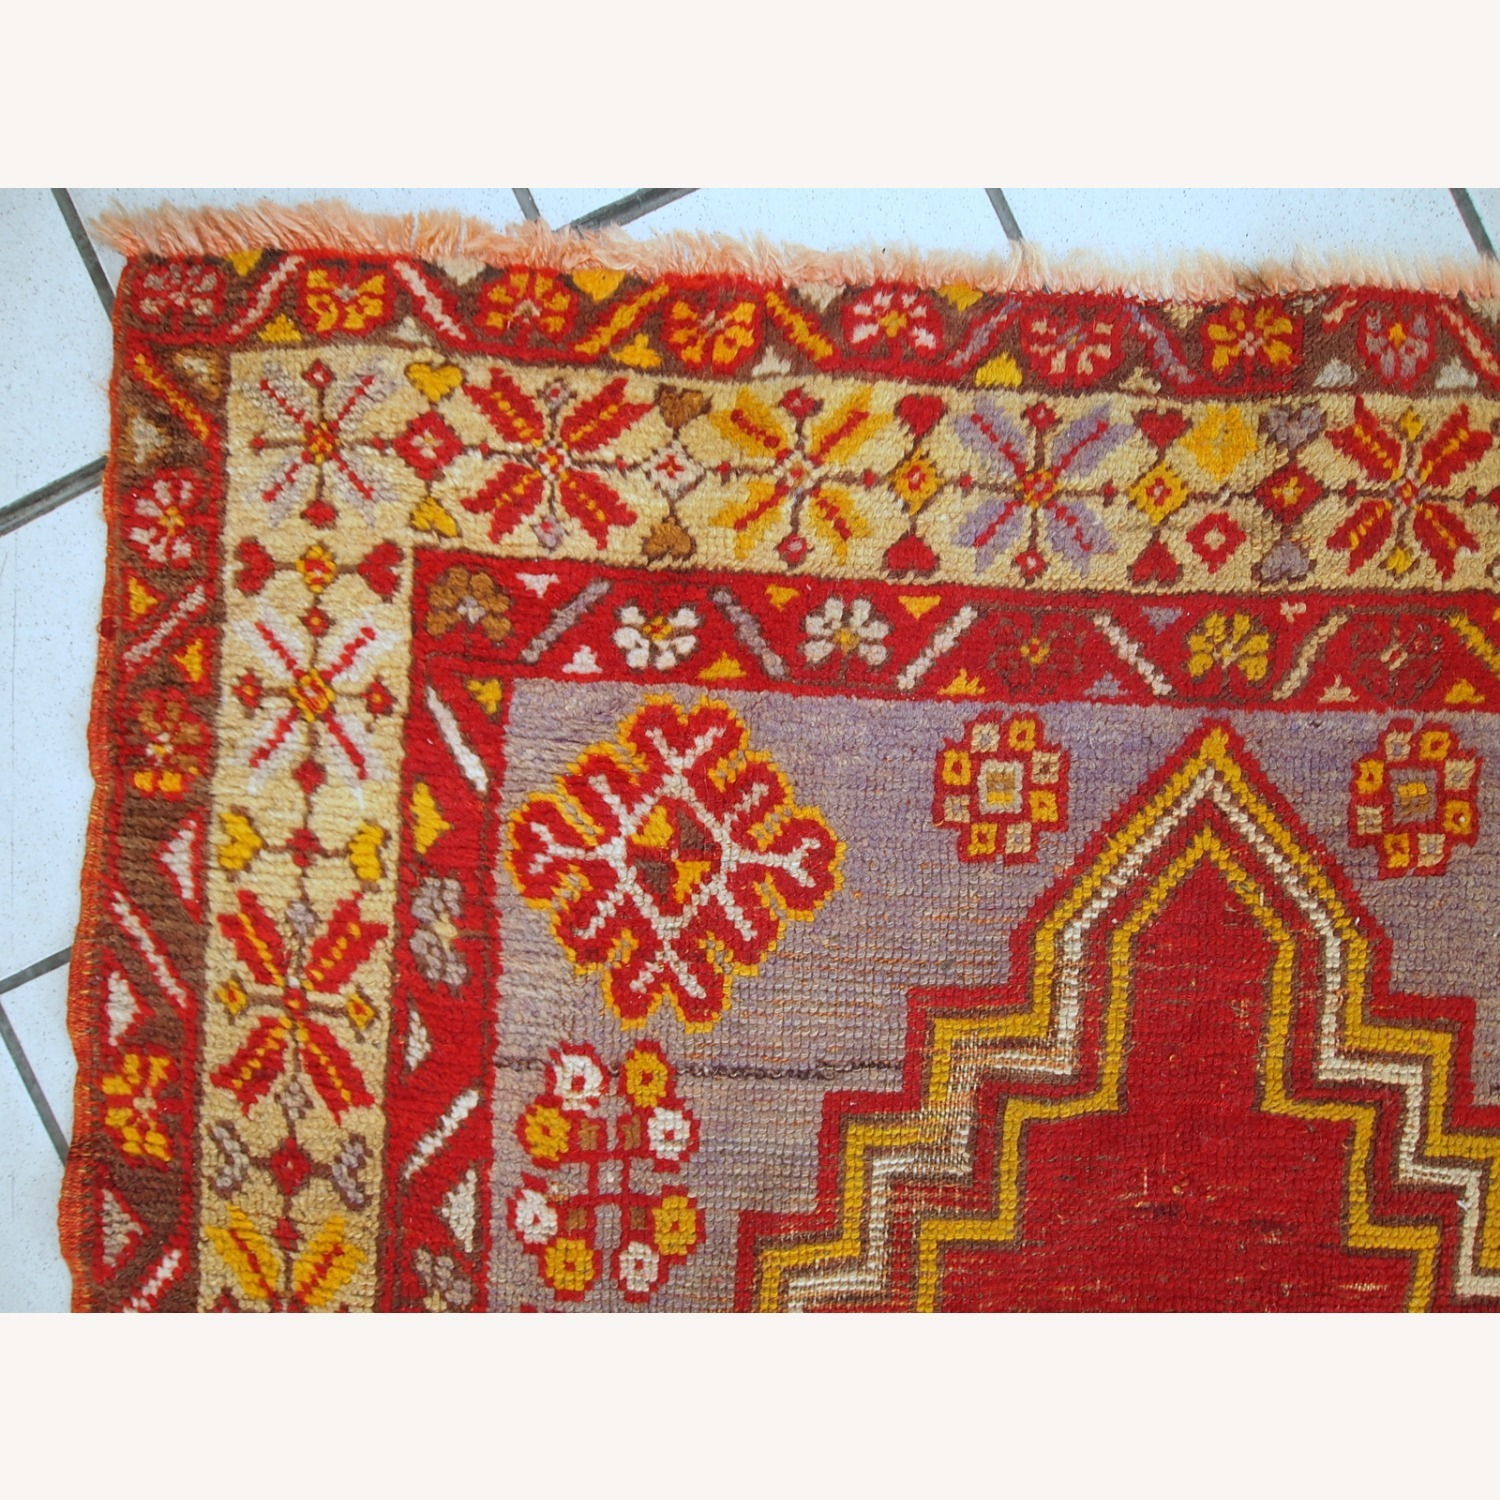 Handmade Antique Turkish Anatolian Rug - image-12